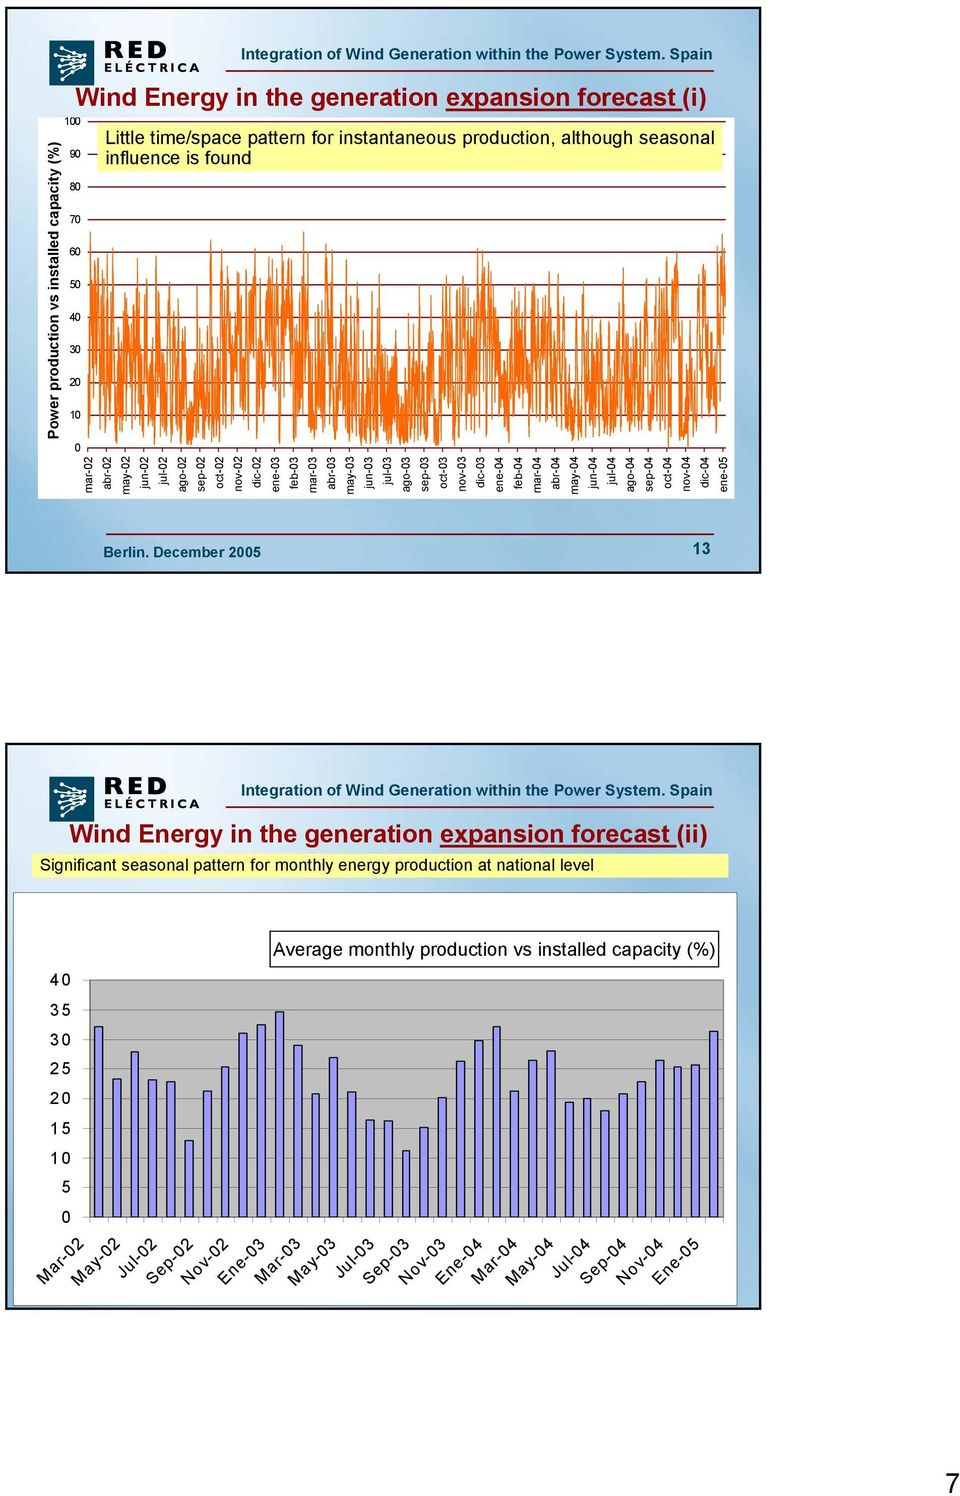 oct-03 nov-03 dic-03 ene-04 feb-04 mar-04 abr-04 may-04 jun-04 jul-04 ago-04 sep-04 oct-04 nov-04 dic-04 ene-05 13 Wind Energy in the generation expansion forecast (ii) Significant seasonal pattern